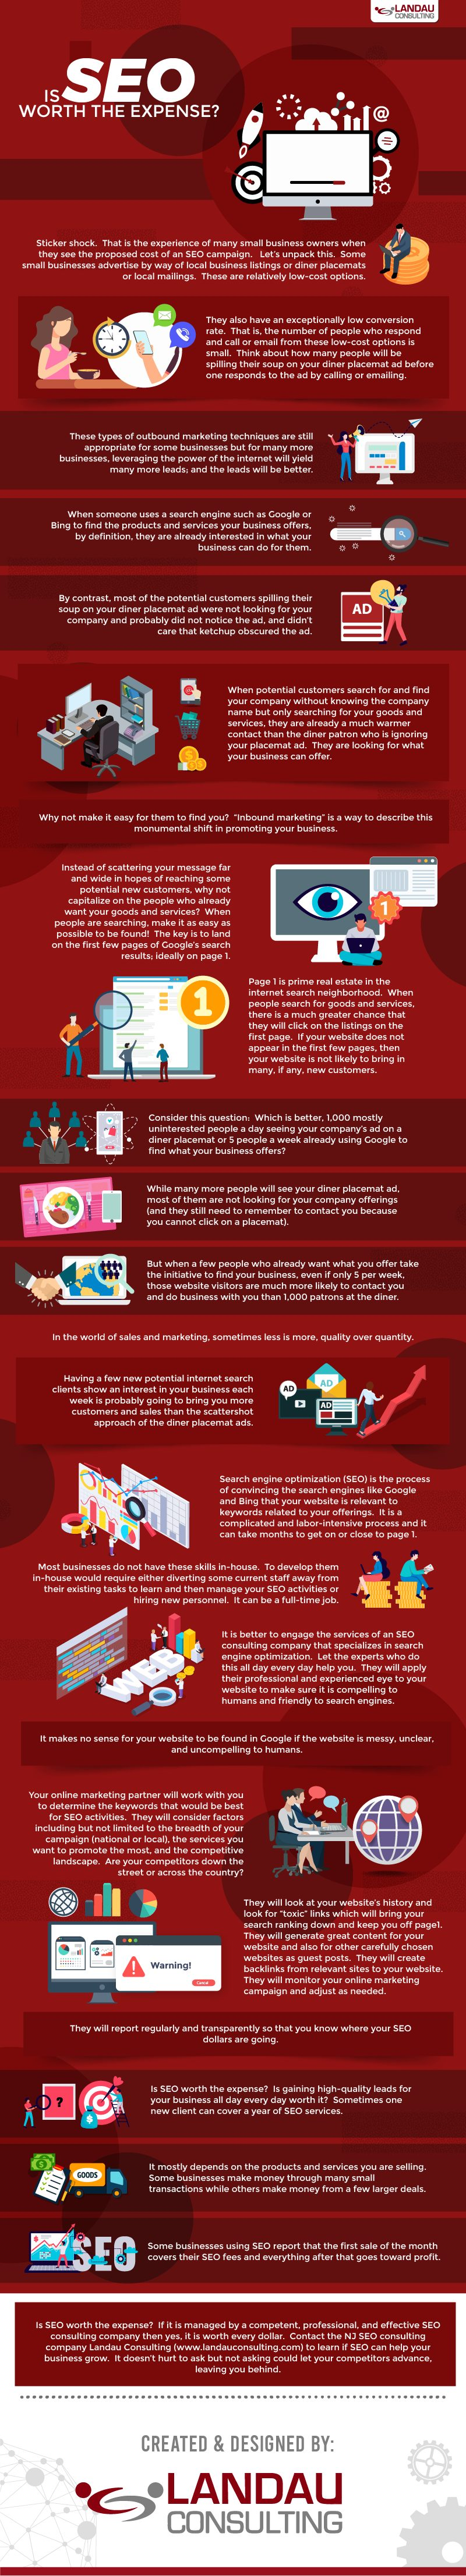 Is SEO Worth the Expense infographic landauconsulting.com